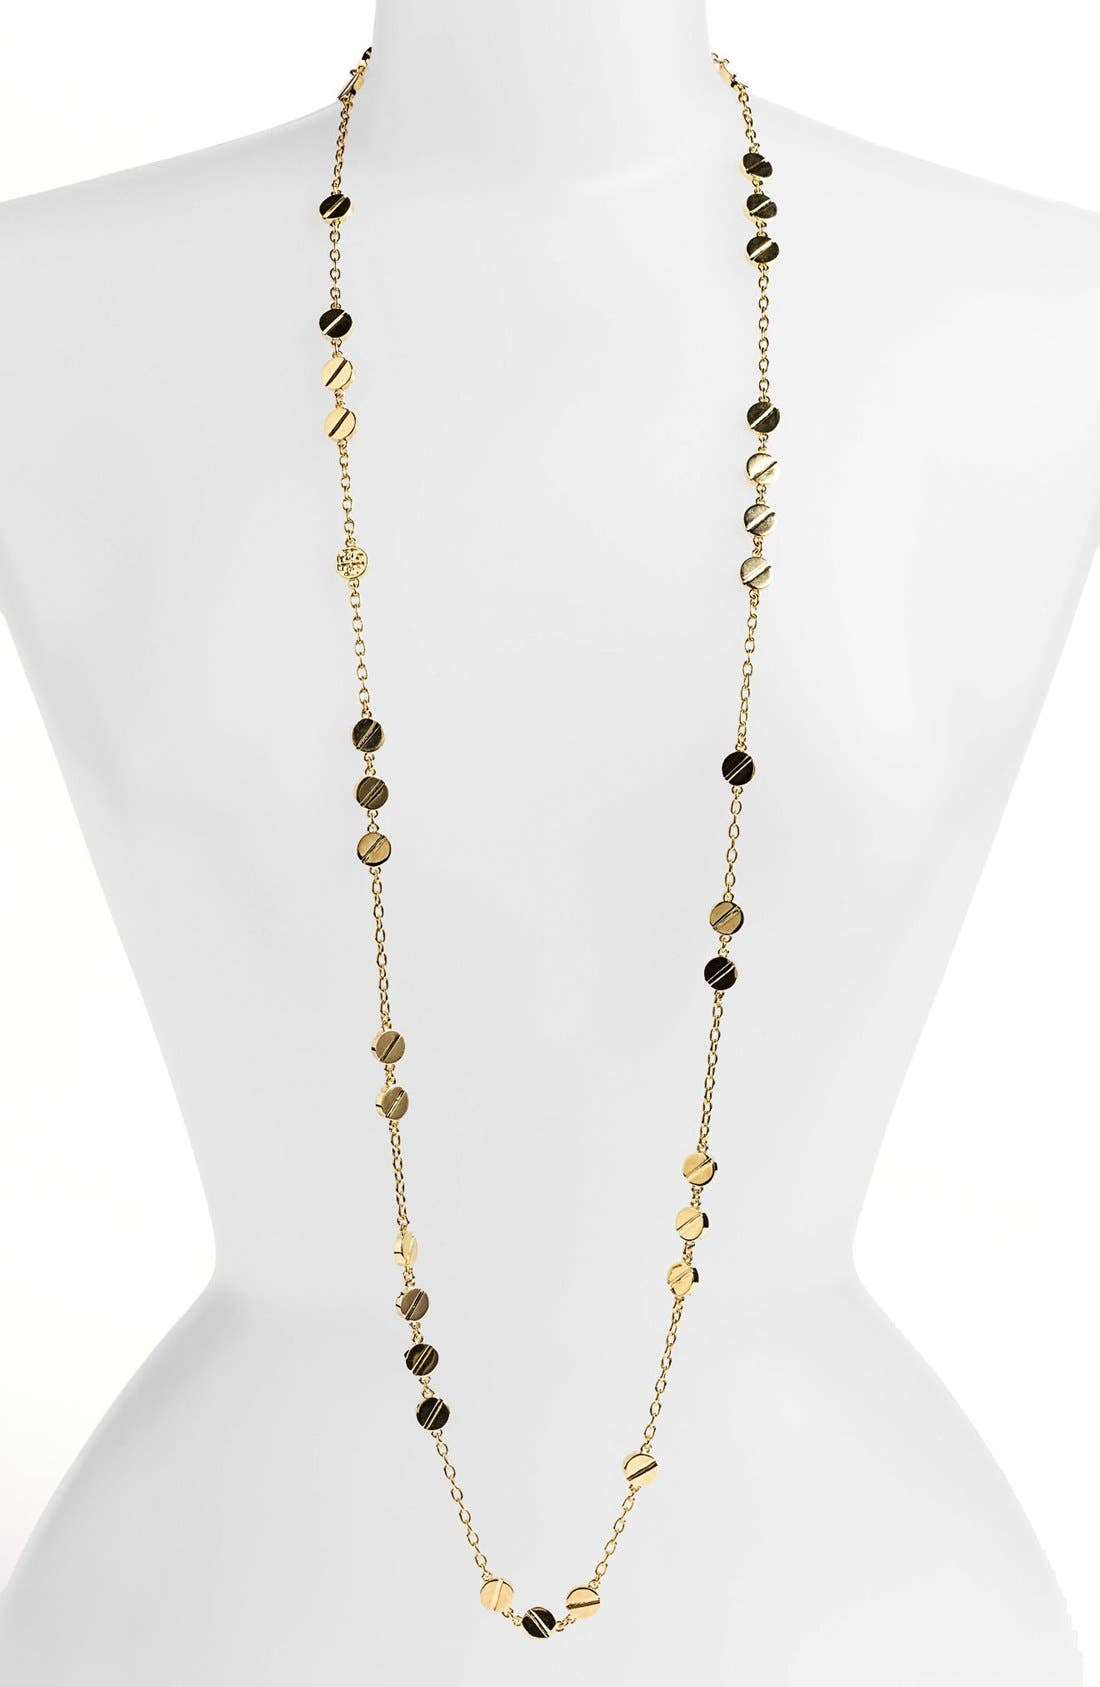 Alternate Image 1 Selected - Tory Burch 'Screw Rivet' Extra Long Station Necklace